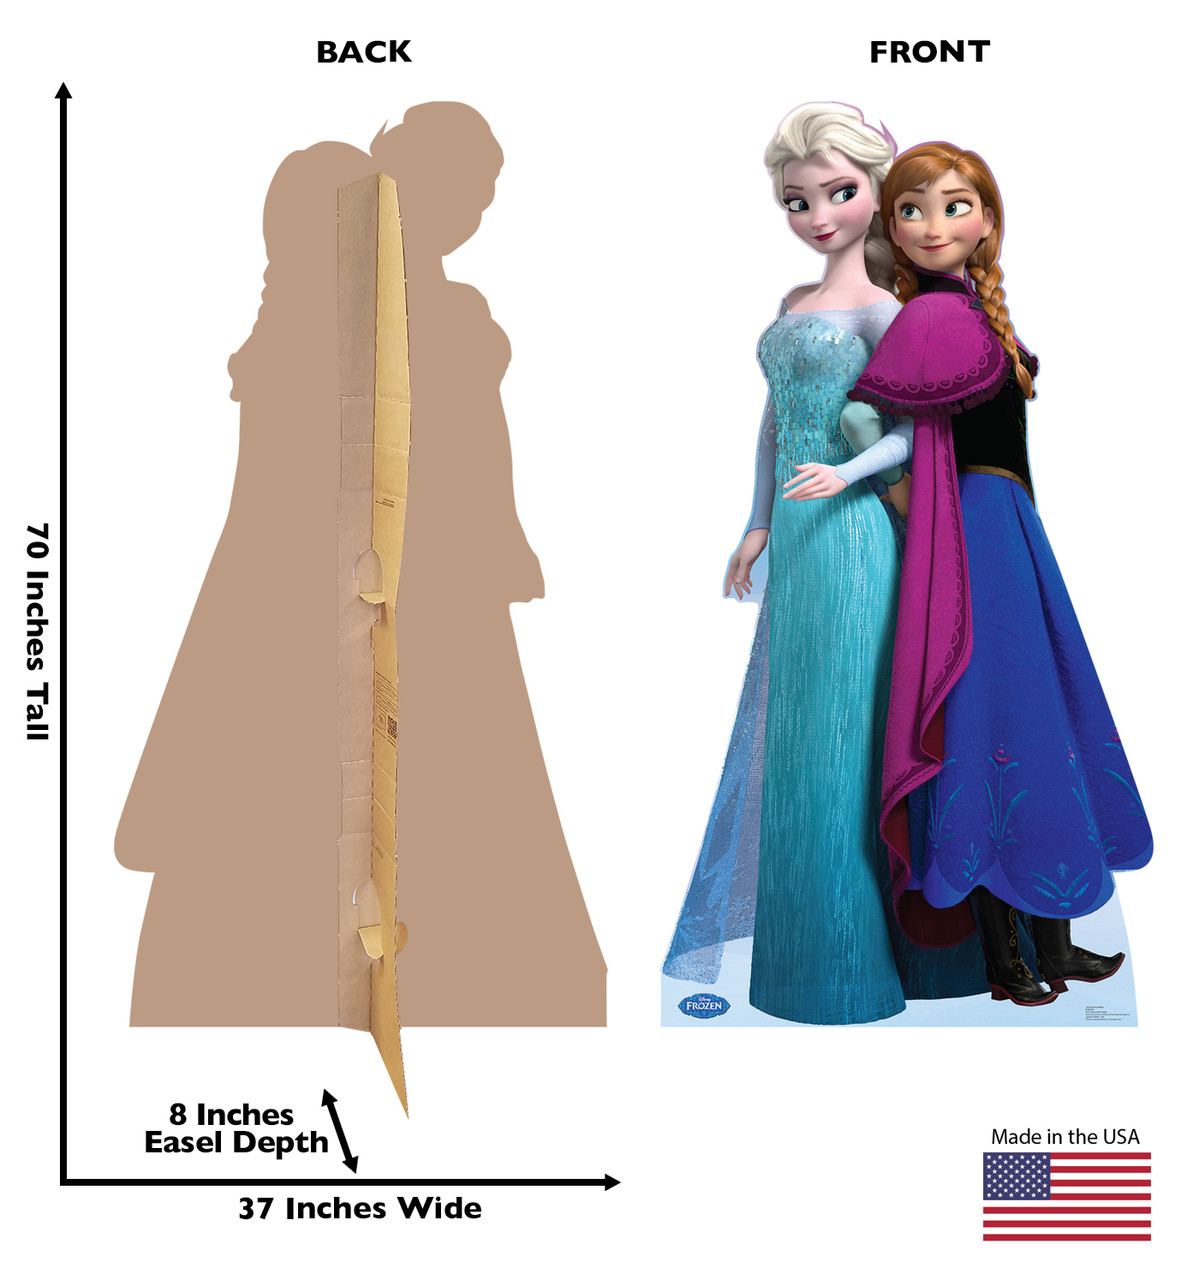 Elsa and Anna - Disney's Frozen Cardboard Cutout front and back view